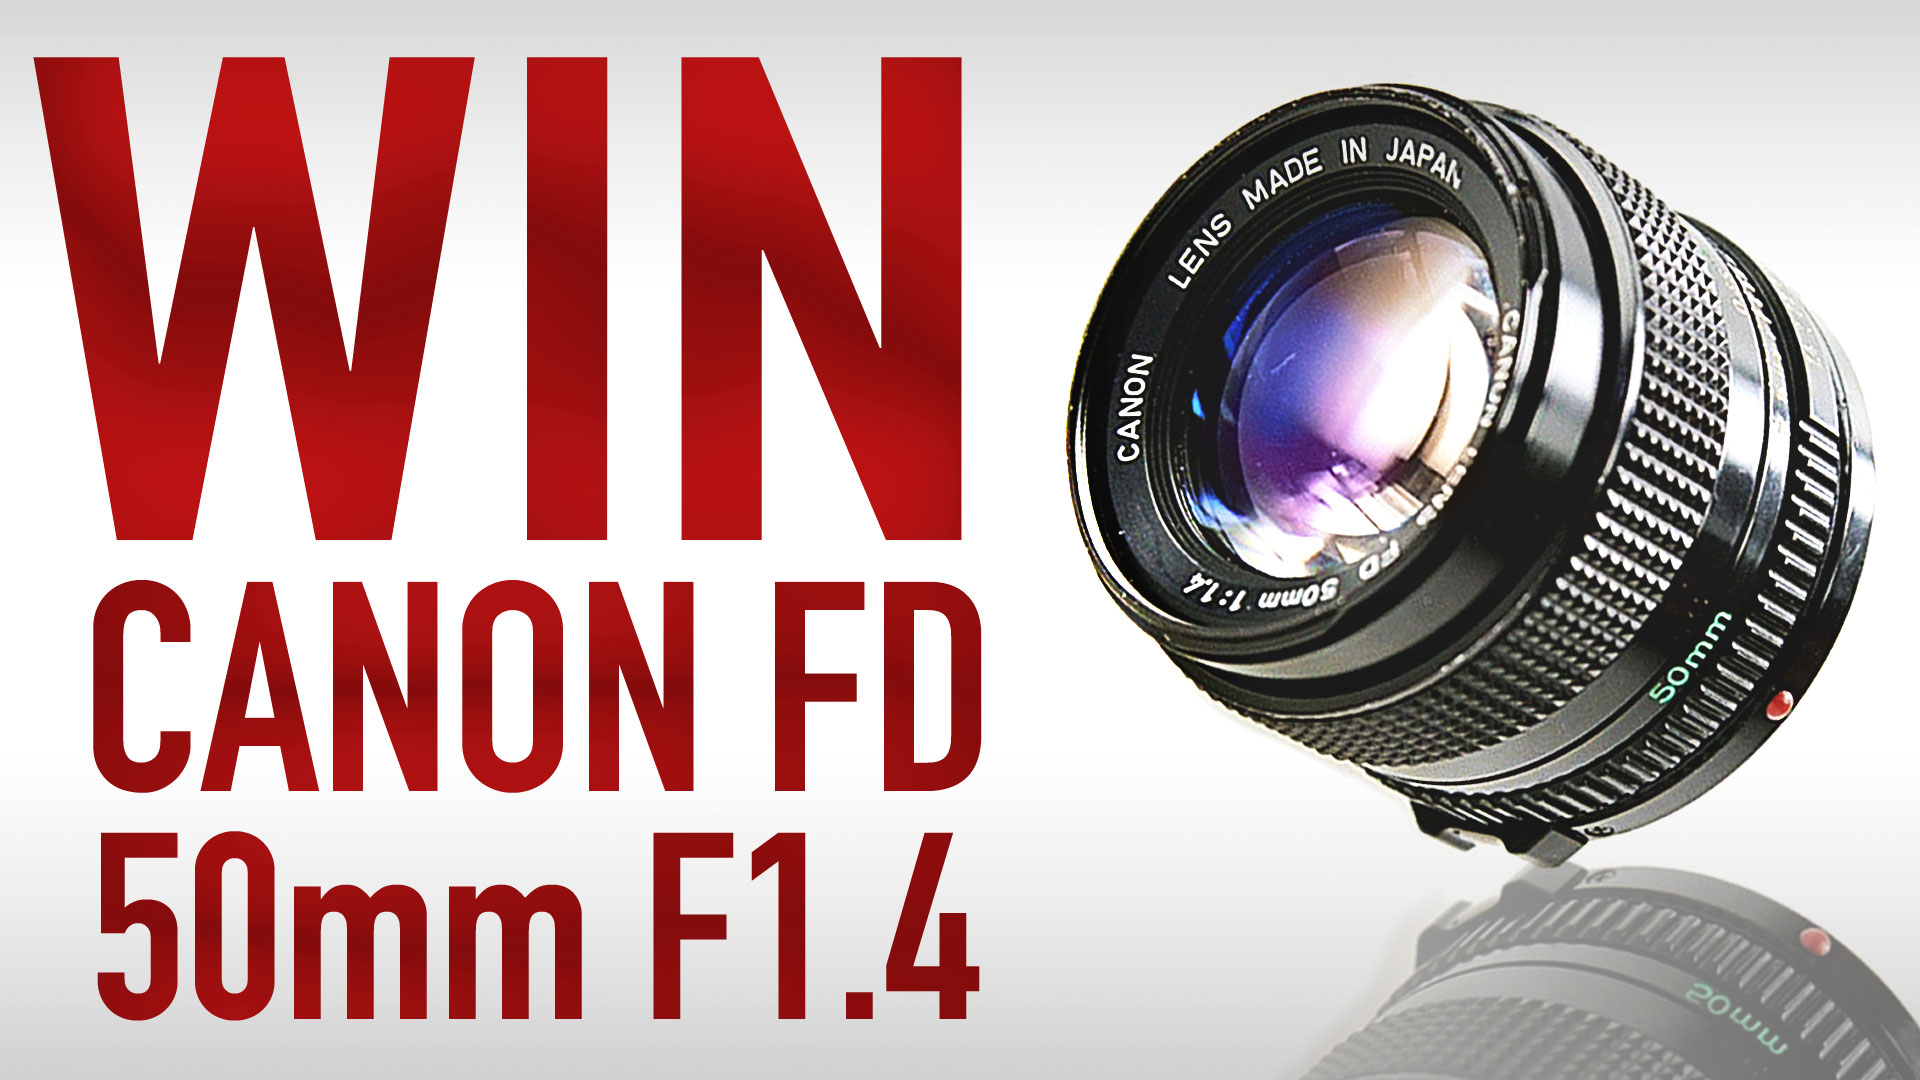 WIN CANON FD 50mm F1.4 LENS | February Vintage Lens Giveaway